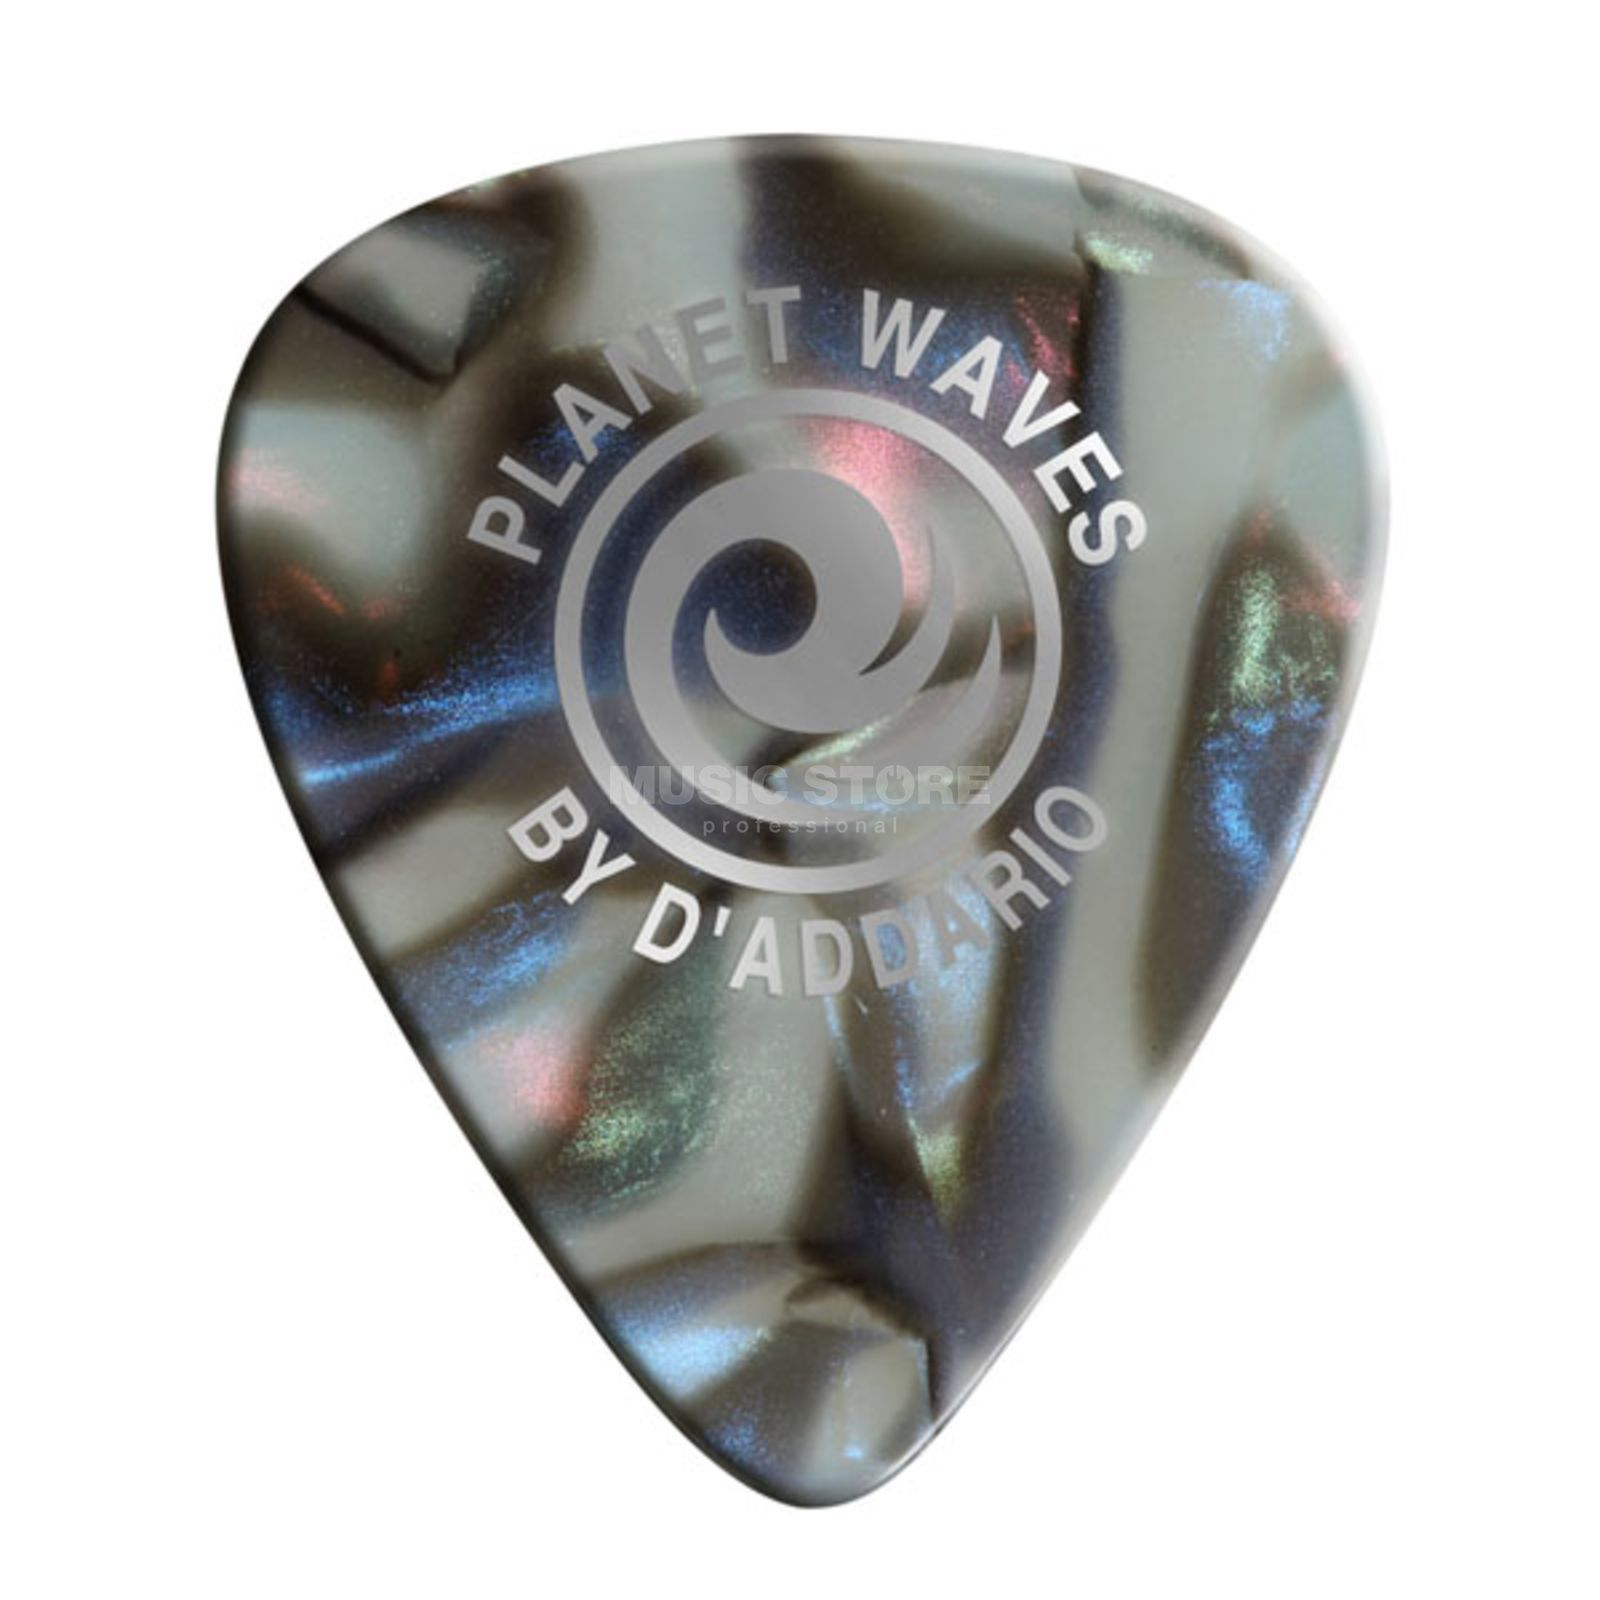 D'Addario Planet Waves Abalone Picks 1,00mm 10-Pack, 1CAB6-10 Produktbild